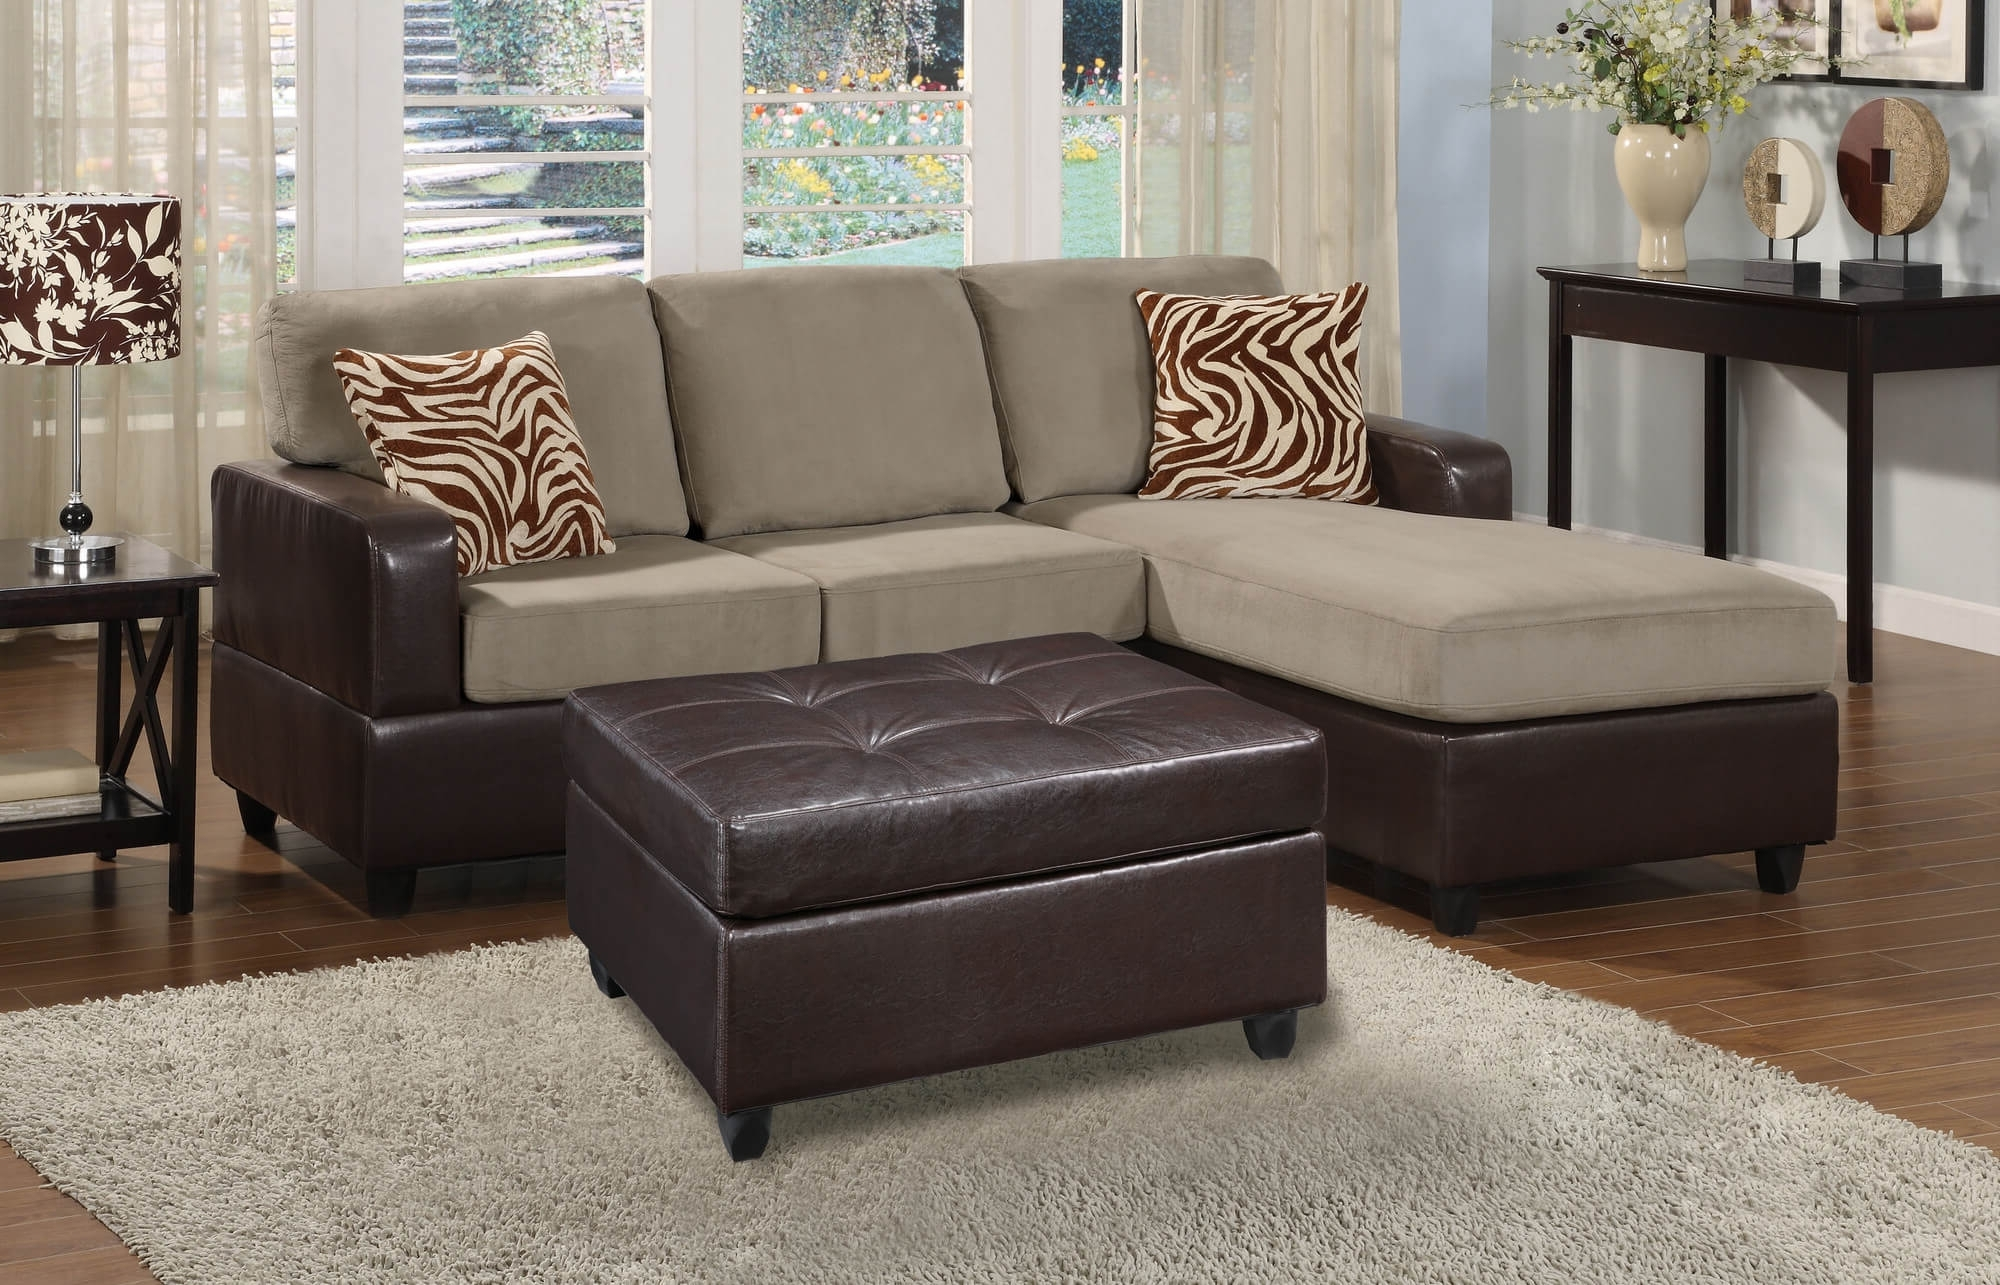 Small Sectional Sofas With Chaise And Ottoman Regarding Most Current 100 Awesome Sectional Sofas Under $1,000 (2018) (Gallery 7 of 20)